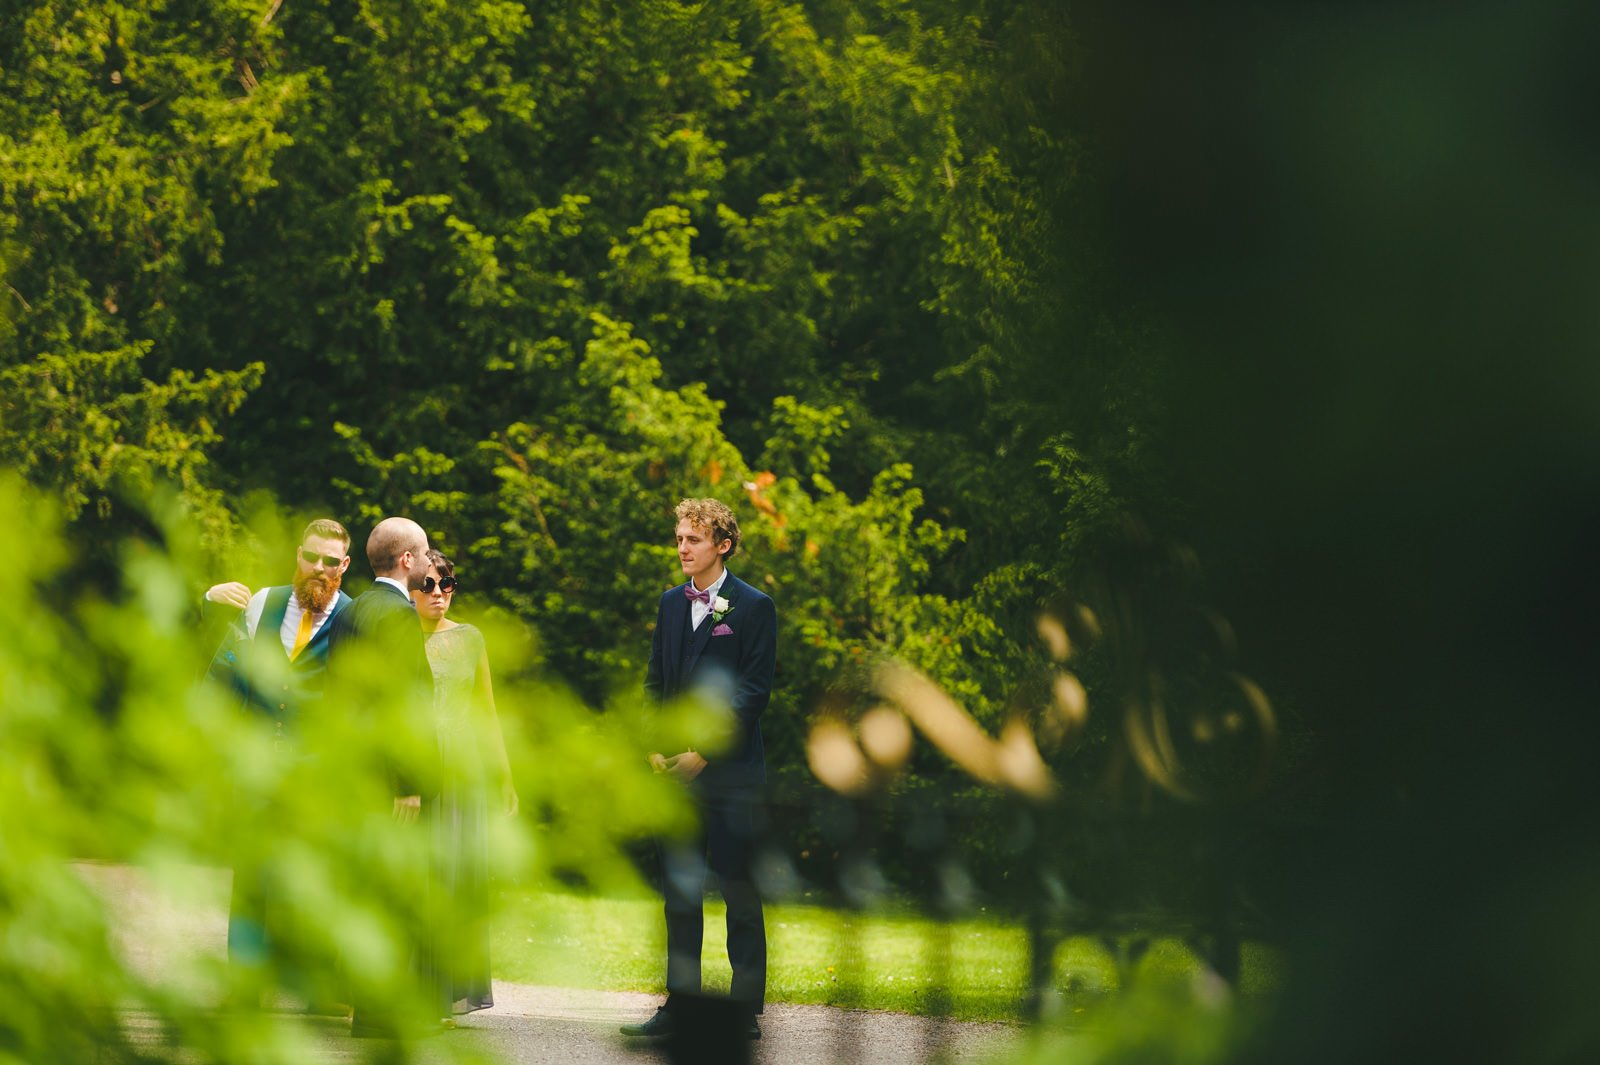 millers of netley wedding 15 - Millers Of Netley wedding, Dorrington, Shrewsbury | Emma + Ben